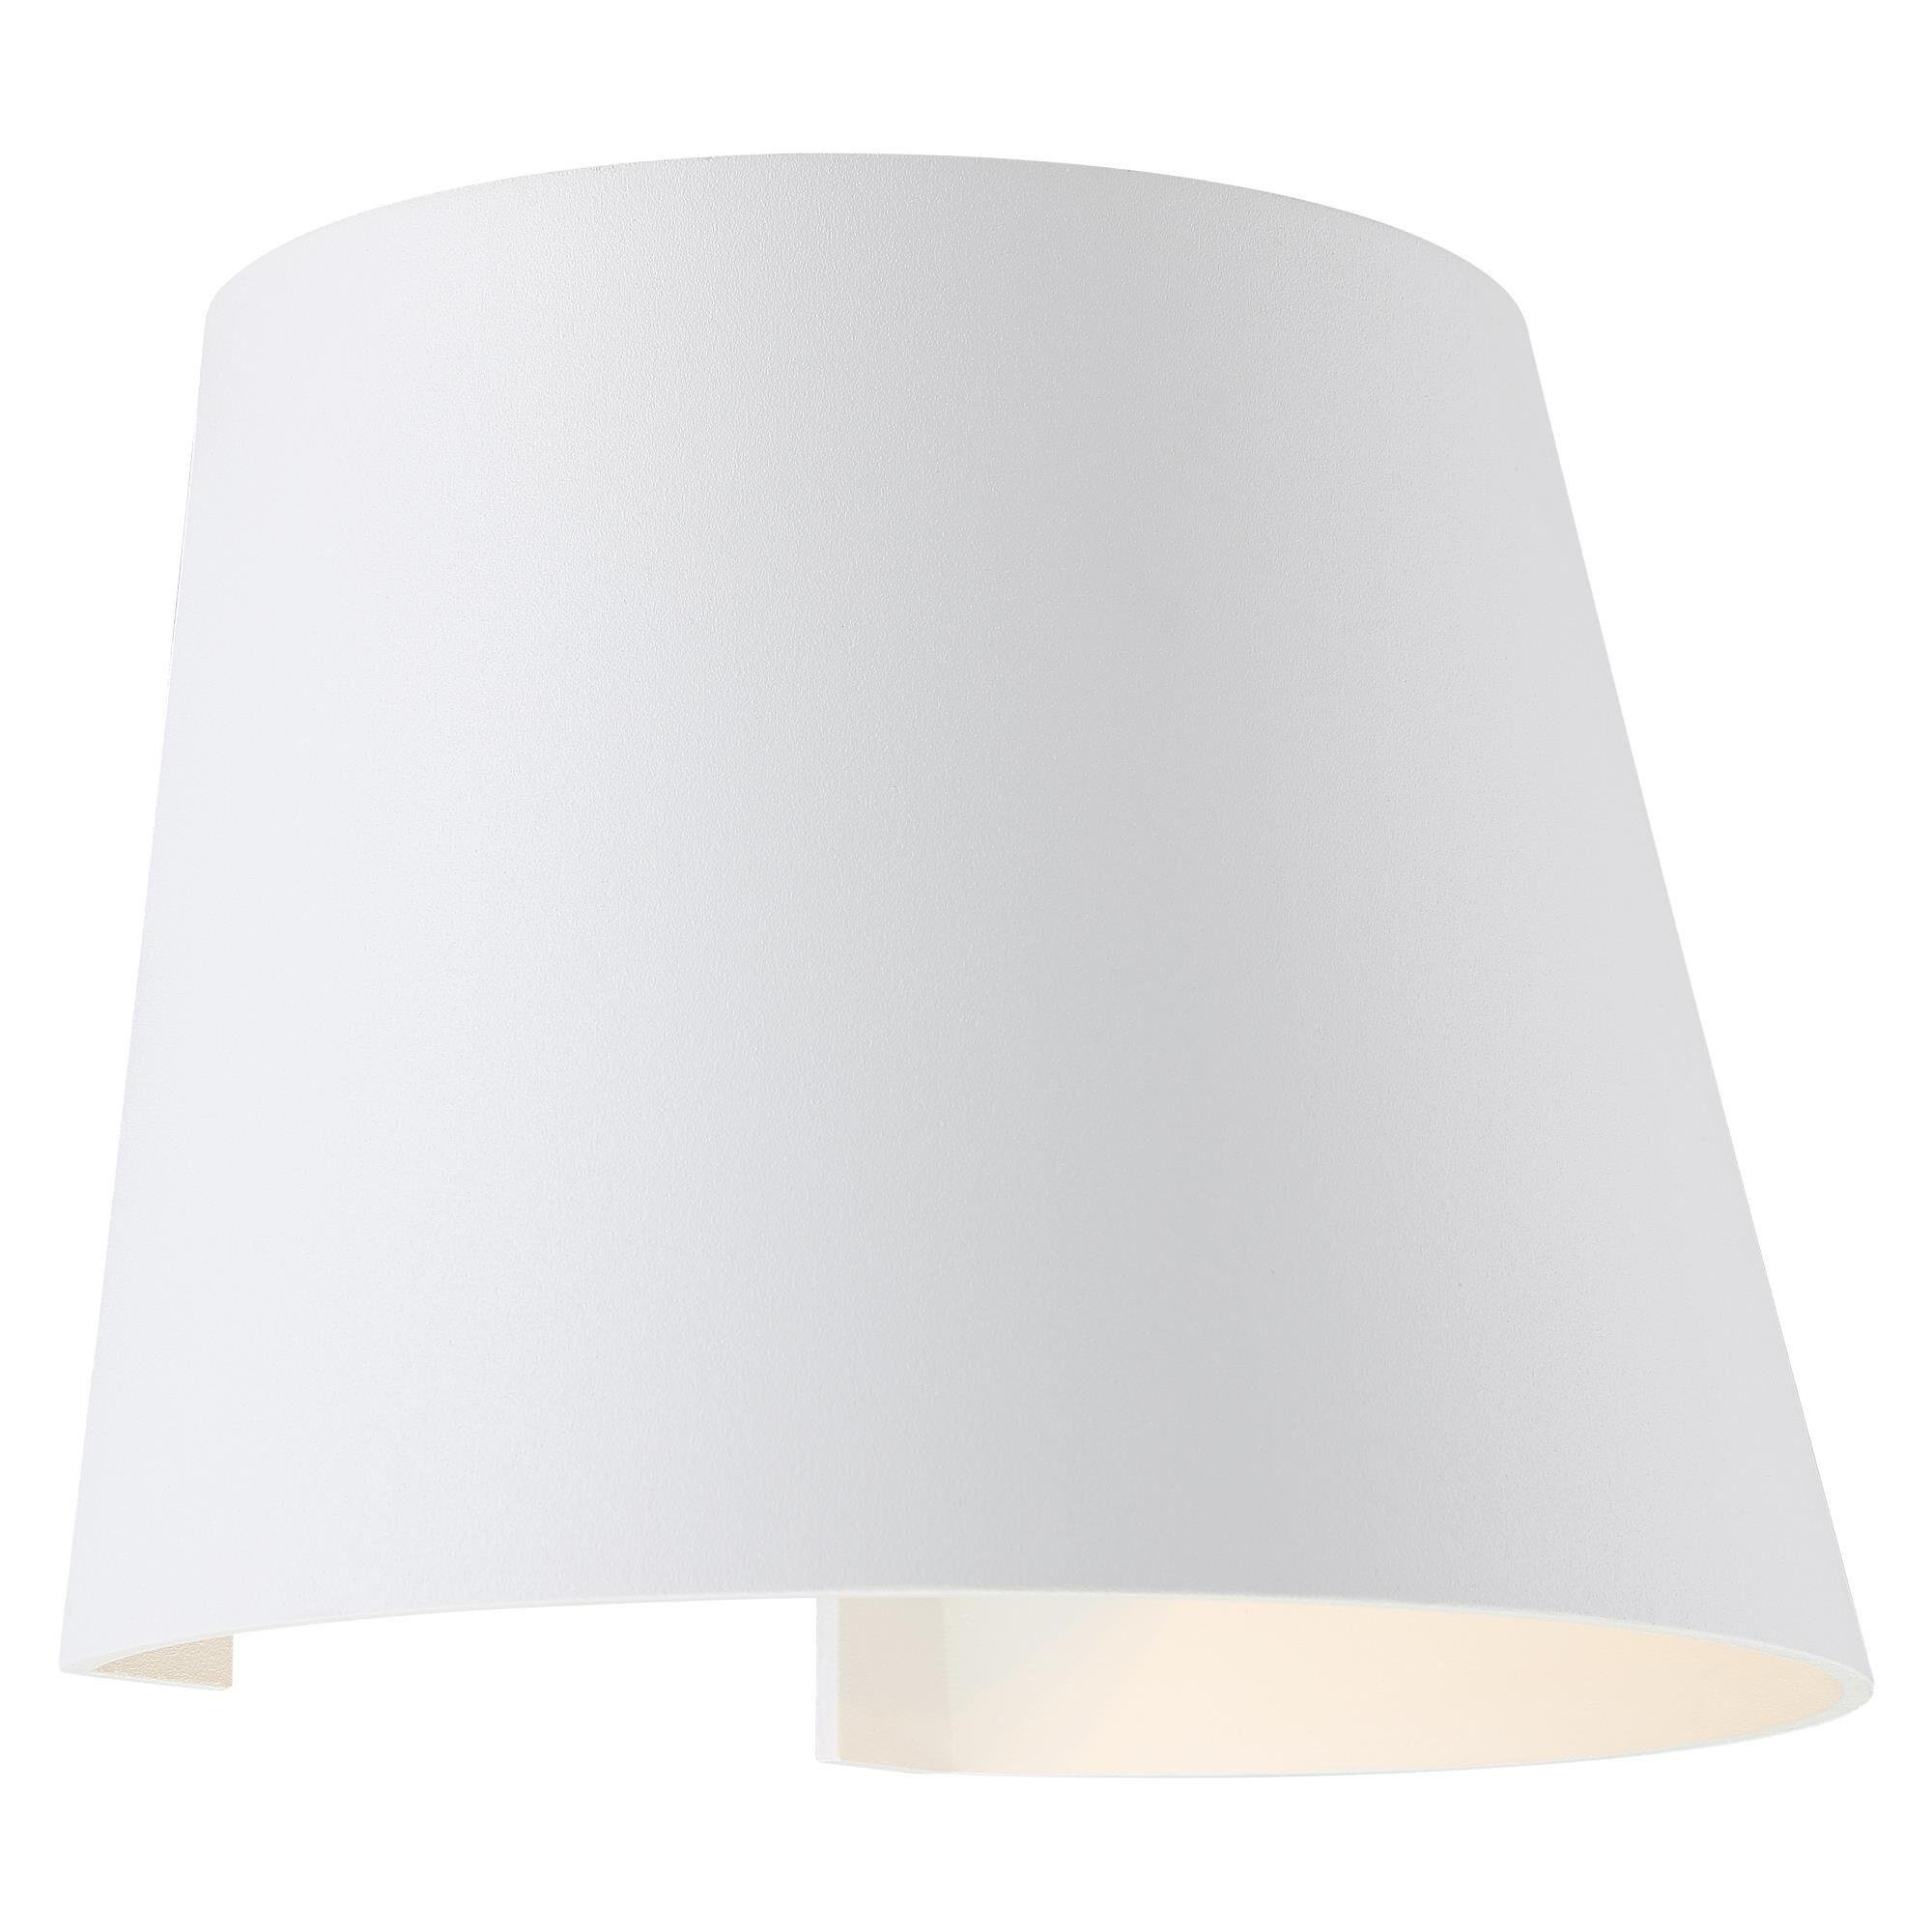 Access Lighting Cone 6 Inch Tall 2 Light LED Outdoor Wall Light Cone 20399LEDMGCNE WH Modern Contemporary